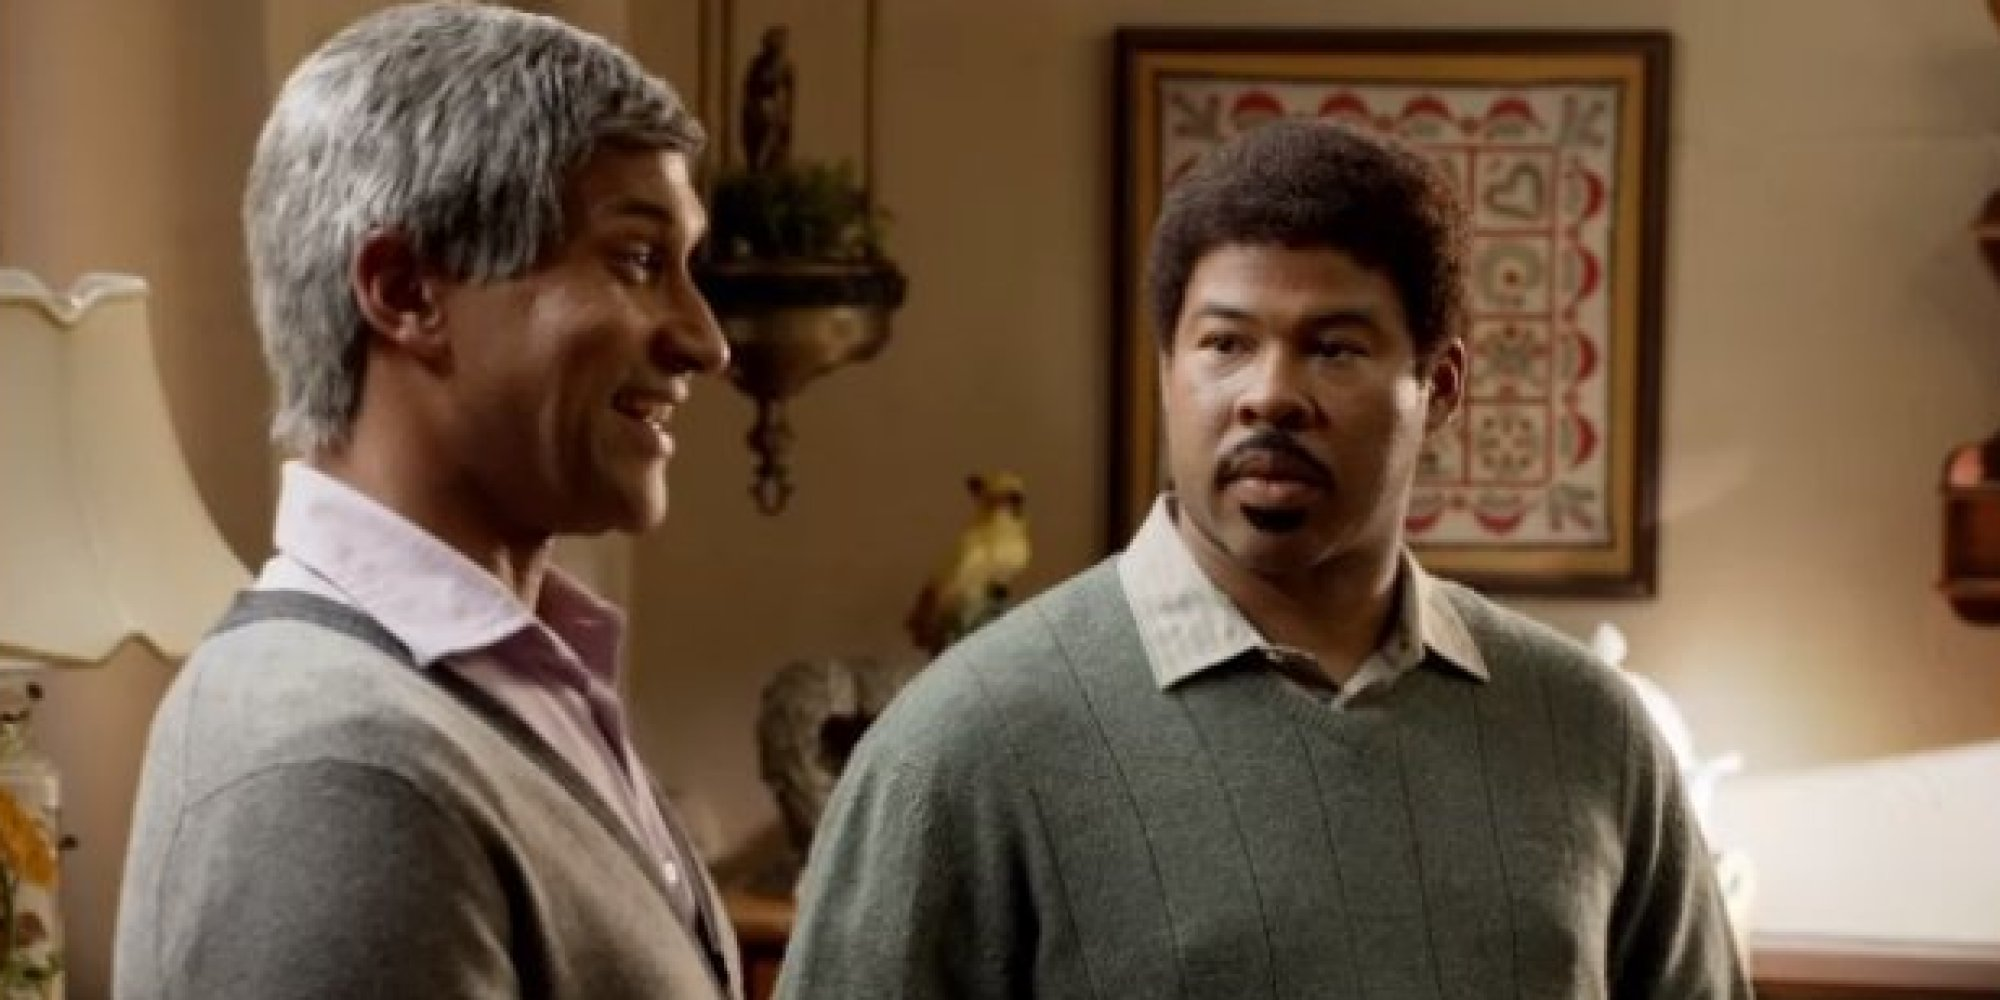 Are key and peele gay